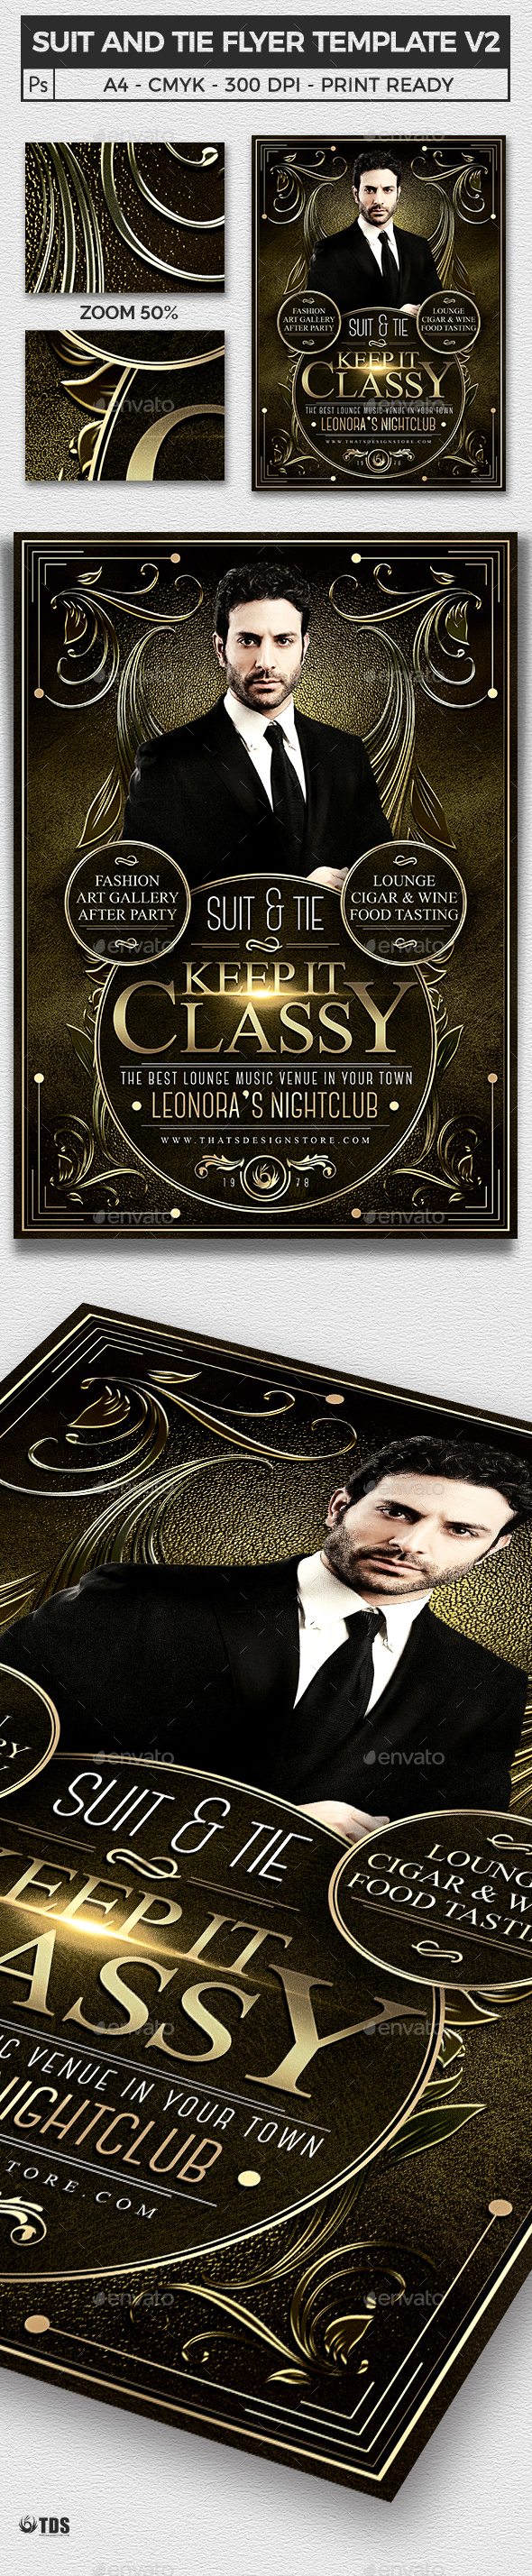 Suit and Tie Flyer Template V2 - Clubs & Parties Events